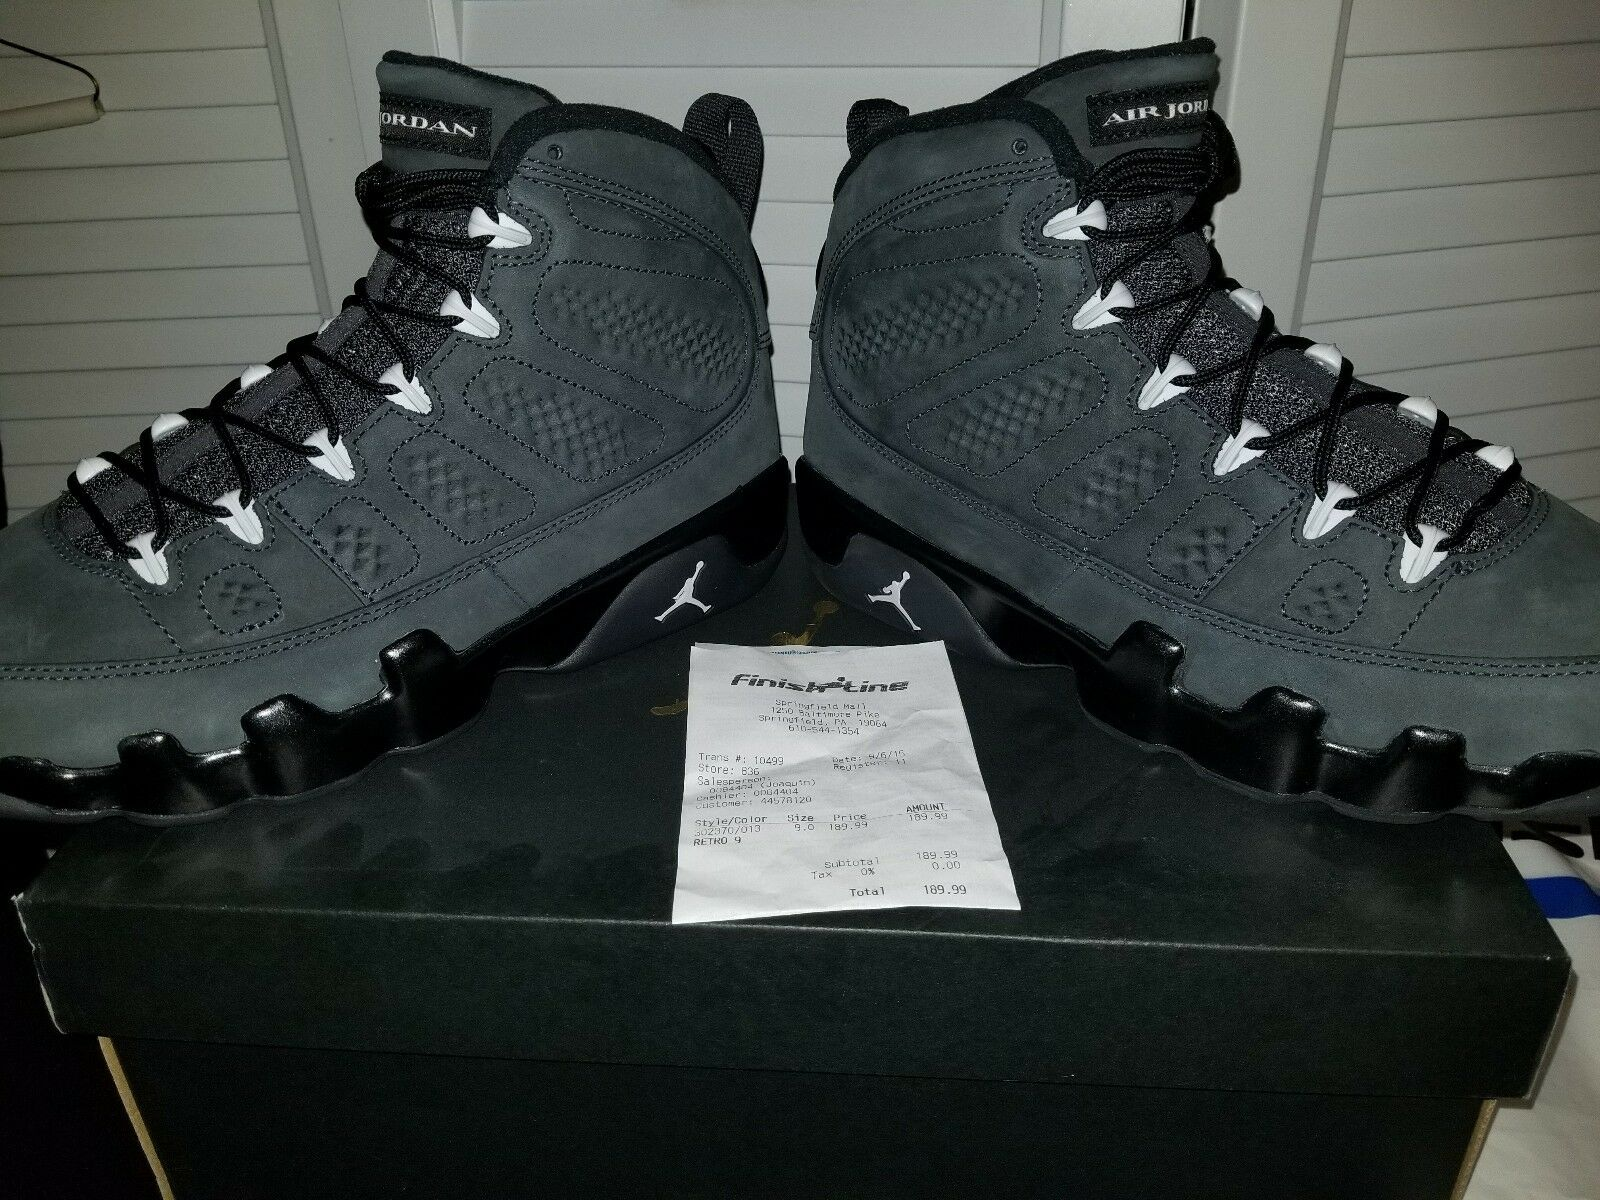 d699f5d87edc Nike Air Jordan 9 retro retro retro Anthracite White-Black 117989 ...